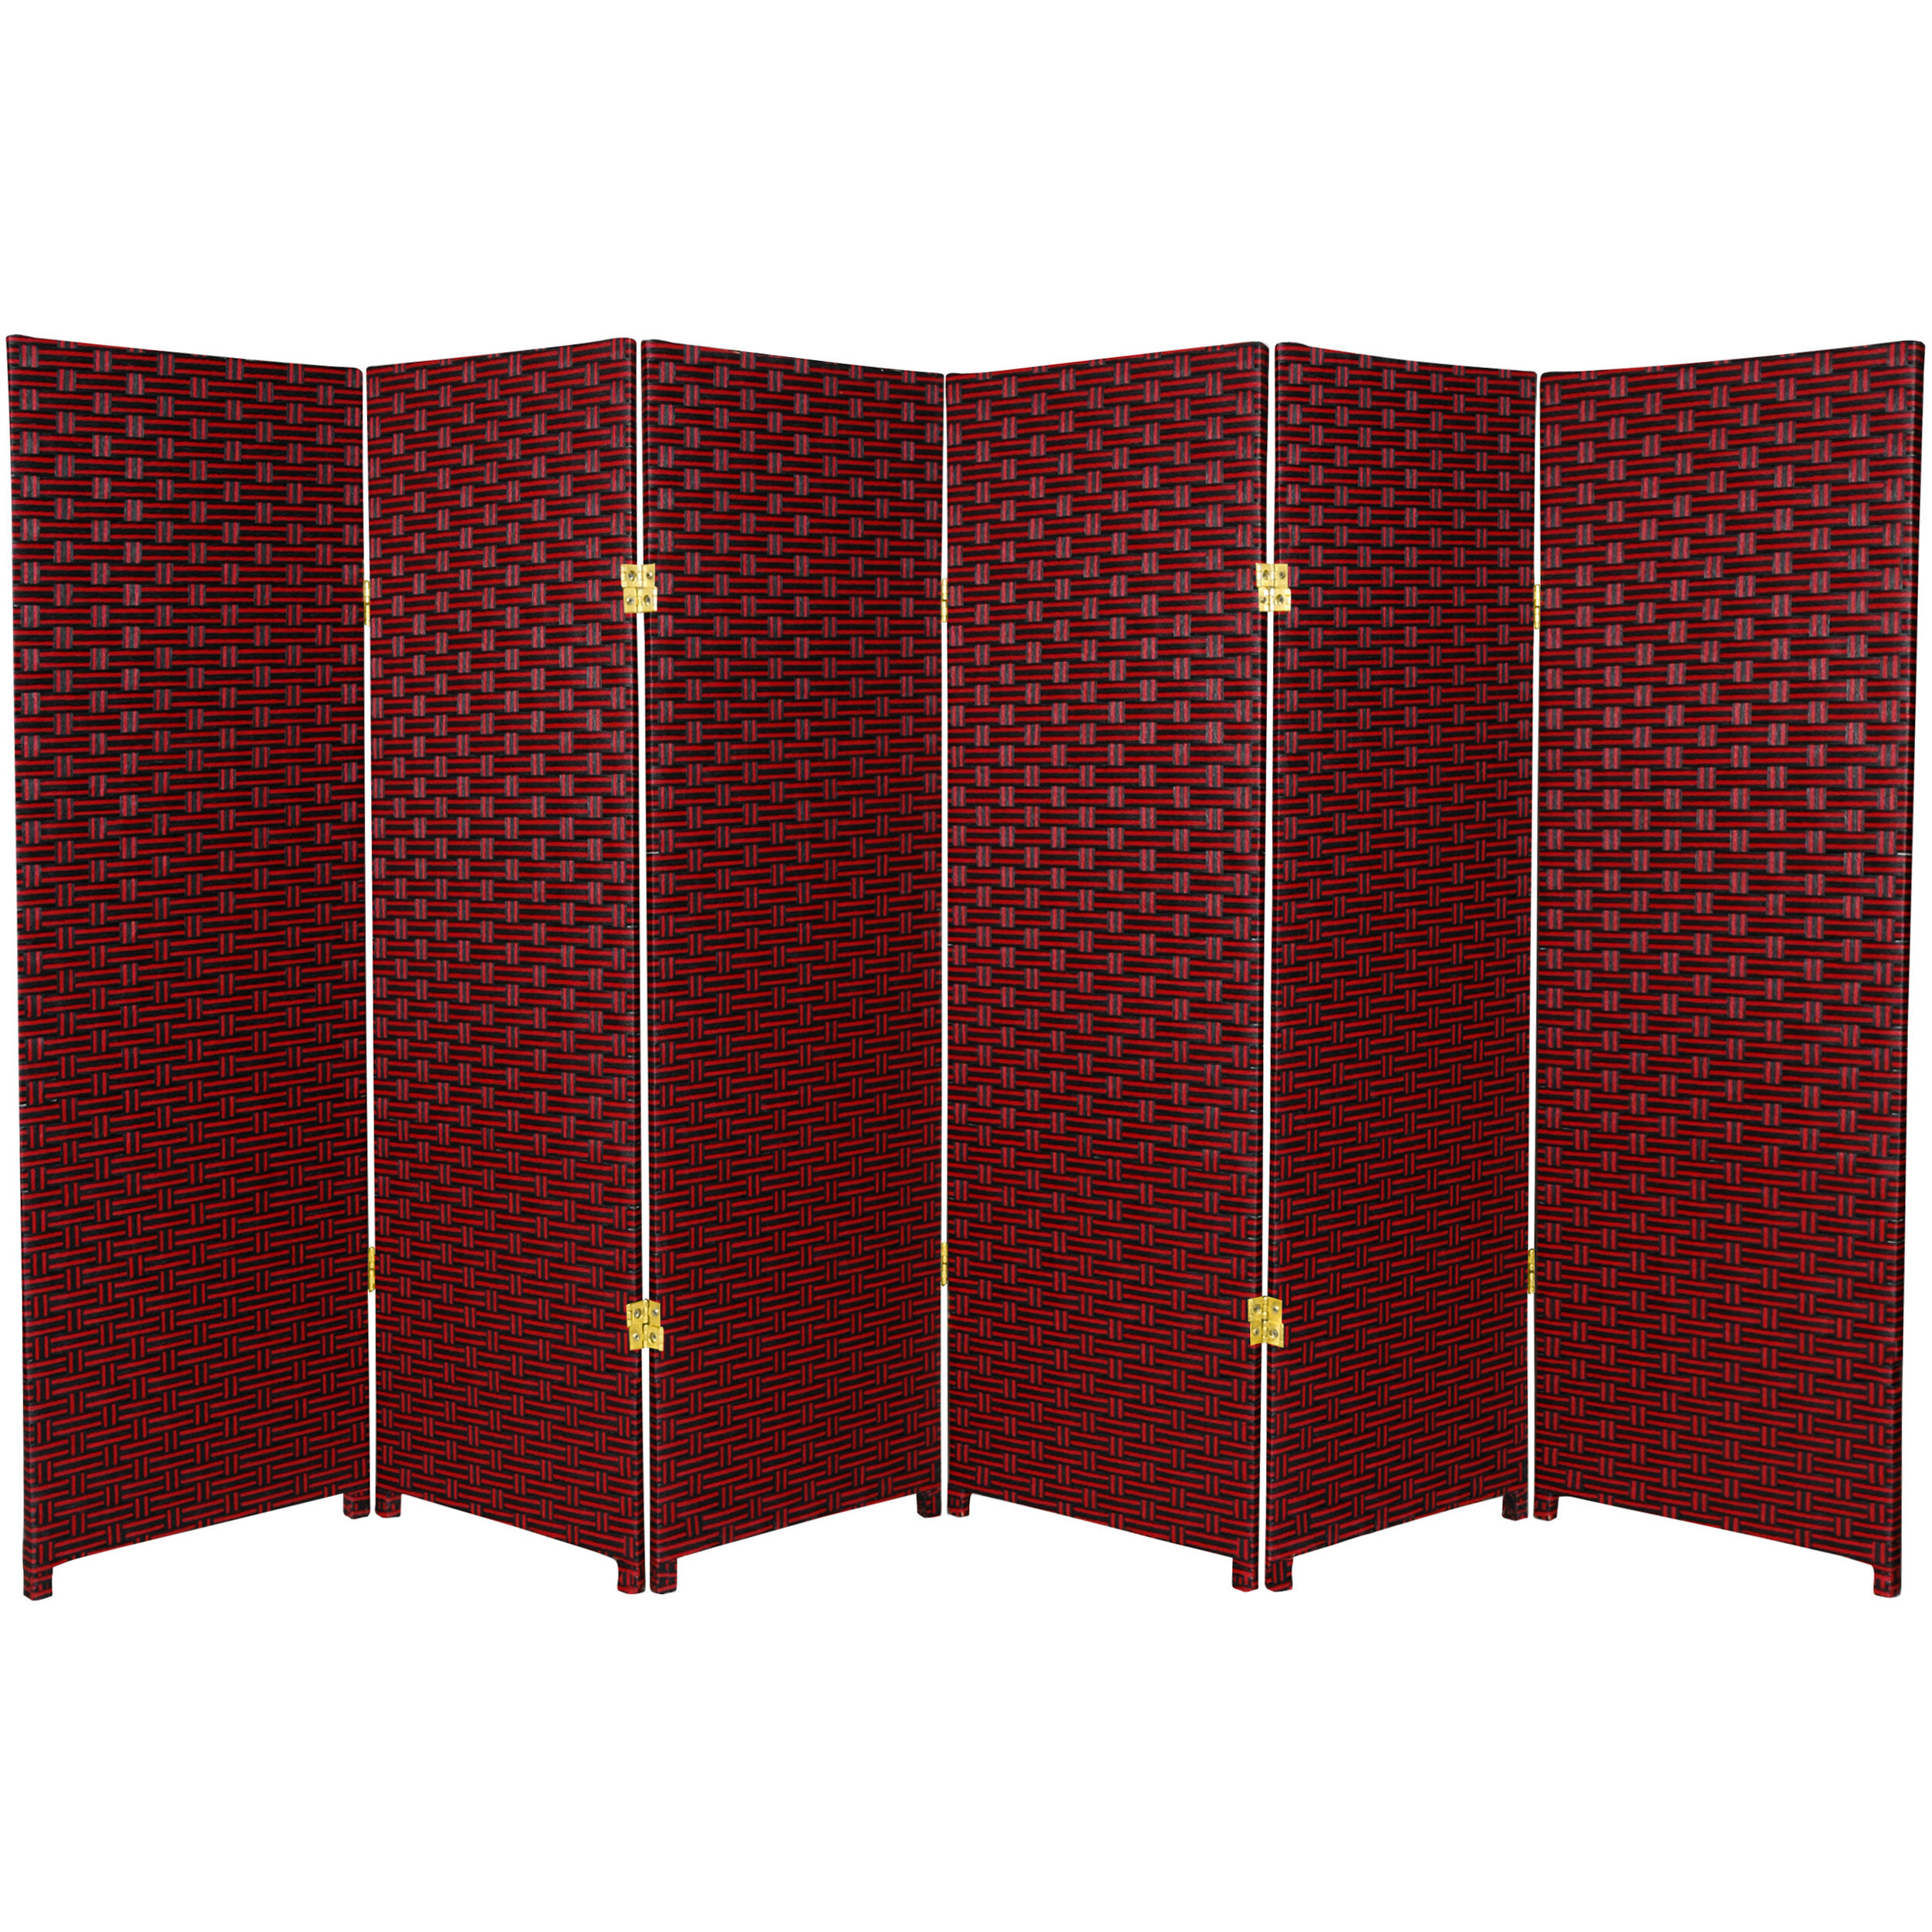 Bloomsbury Market Salvador 6 Panels 4 Ft Room Divider Reviews Wayfair